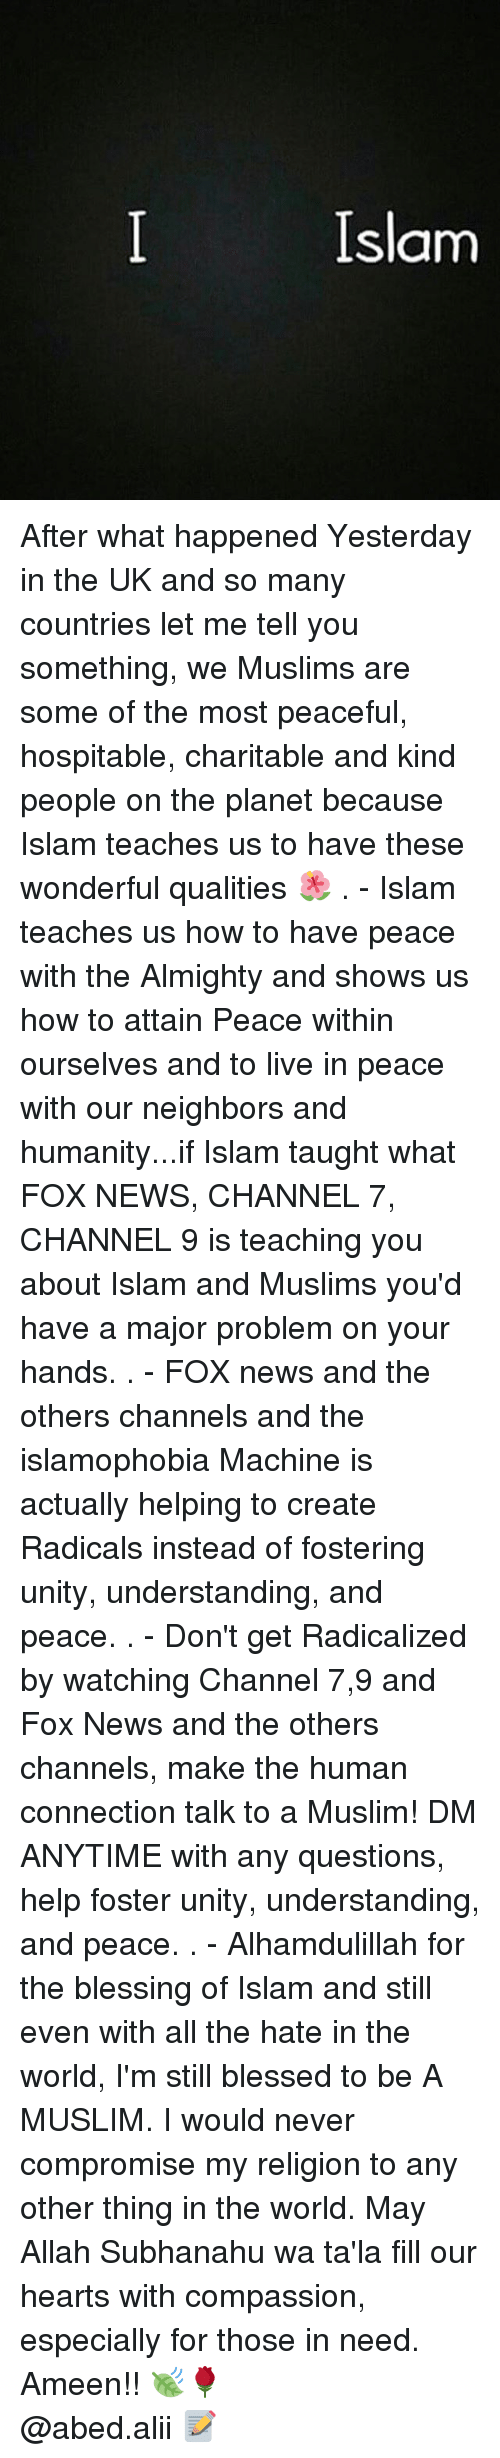 Memes, 🤖, and Fox: Islam After what happened Yesterday in the UK and so many countries let me tell you something, we Muslims are some of the most peaceful, hospitable, charitable and kind people on the planet because Islam teaches us to have these wonderful qualities 🌺 . - Islam teaches us how to have peace with the Almighty and shows us how to attain Peace within ourselves and to live in peace with our neighbors and humanity...if Islam taught what FOX NEWS, CHANNEL 7, CHANNEL 9 is teaching you about Islam and Muslims you'd have a major problem on your hands. . - FOX news and the others channels and the islamophobia Machine is actually helping to create Radicals instead of fostering unity, understanding, and peace. . - Don't get Radicalized by watching Channel 7,9 and Fox News and the others channels, make the human connection talk to a Muslim! DM ANYTIME with any questions, help foster unity, understanding, and peace. . - Alhamdulillah for the blessing of Islam and still even with all the hate in the world, I'm still blessed to be A MUSLIM. I would never compromise my religion to any other thing in the world. May Allah Subhanahu wa ta'la fill our hearts with compassion, especially for those in need. Ameen!! 🍃🌹 ▃▃▃▃▃▃▃▃▃▃▃▃▃▃▃▃▃▃▃▃ @abed.alii 📝